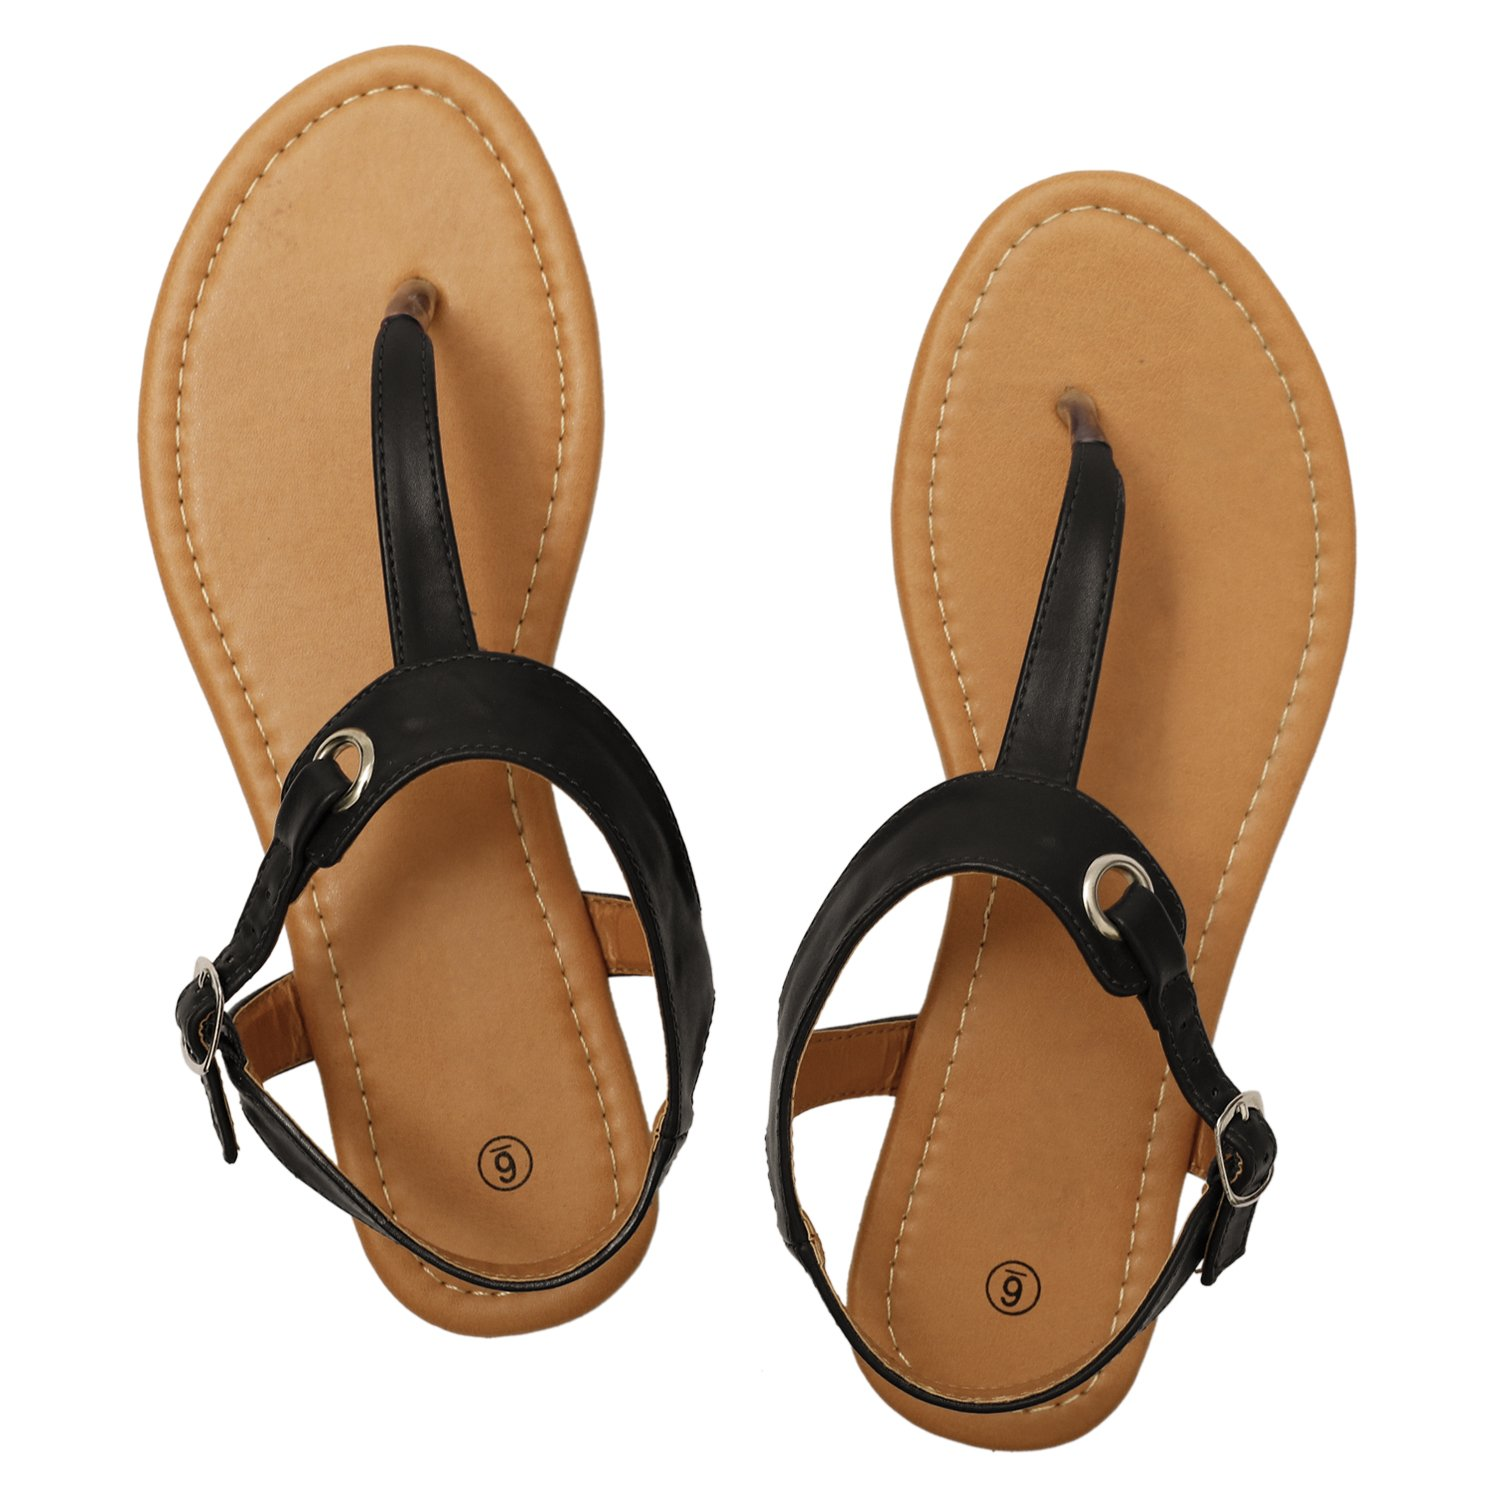 Rekayla Flat Thong Sandals with T-Strap and Adjustable Ankle Buckle for Women Black 08